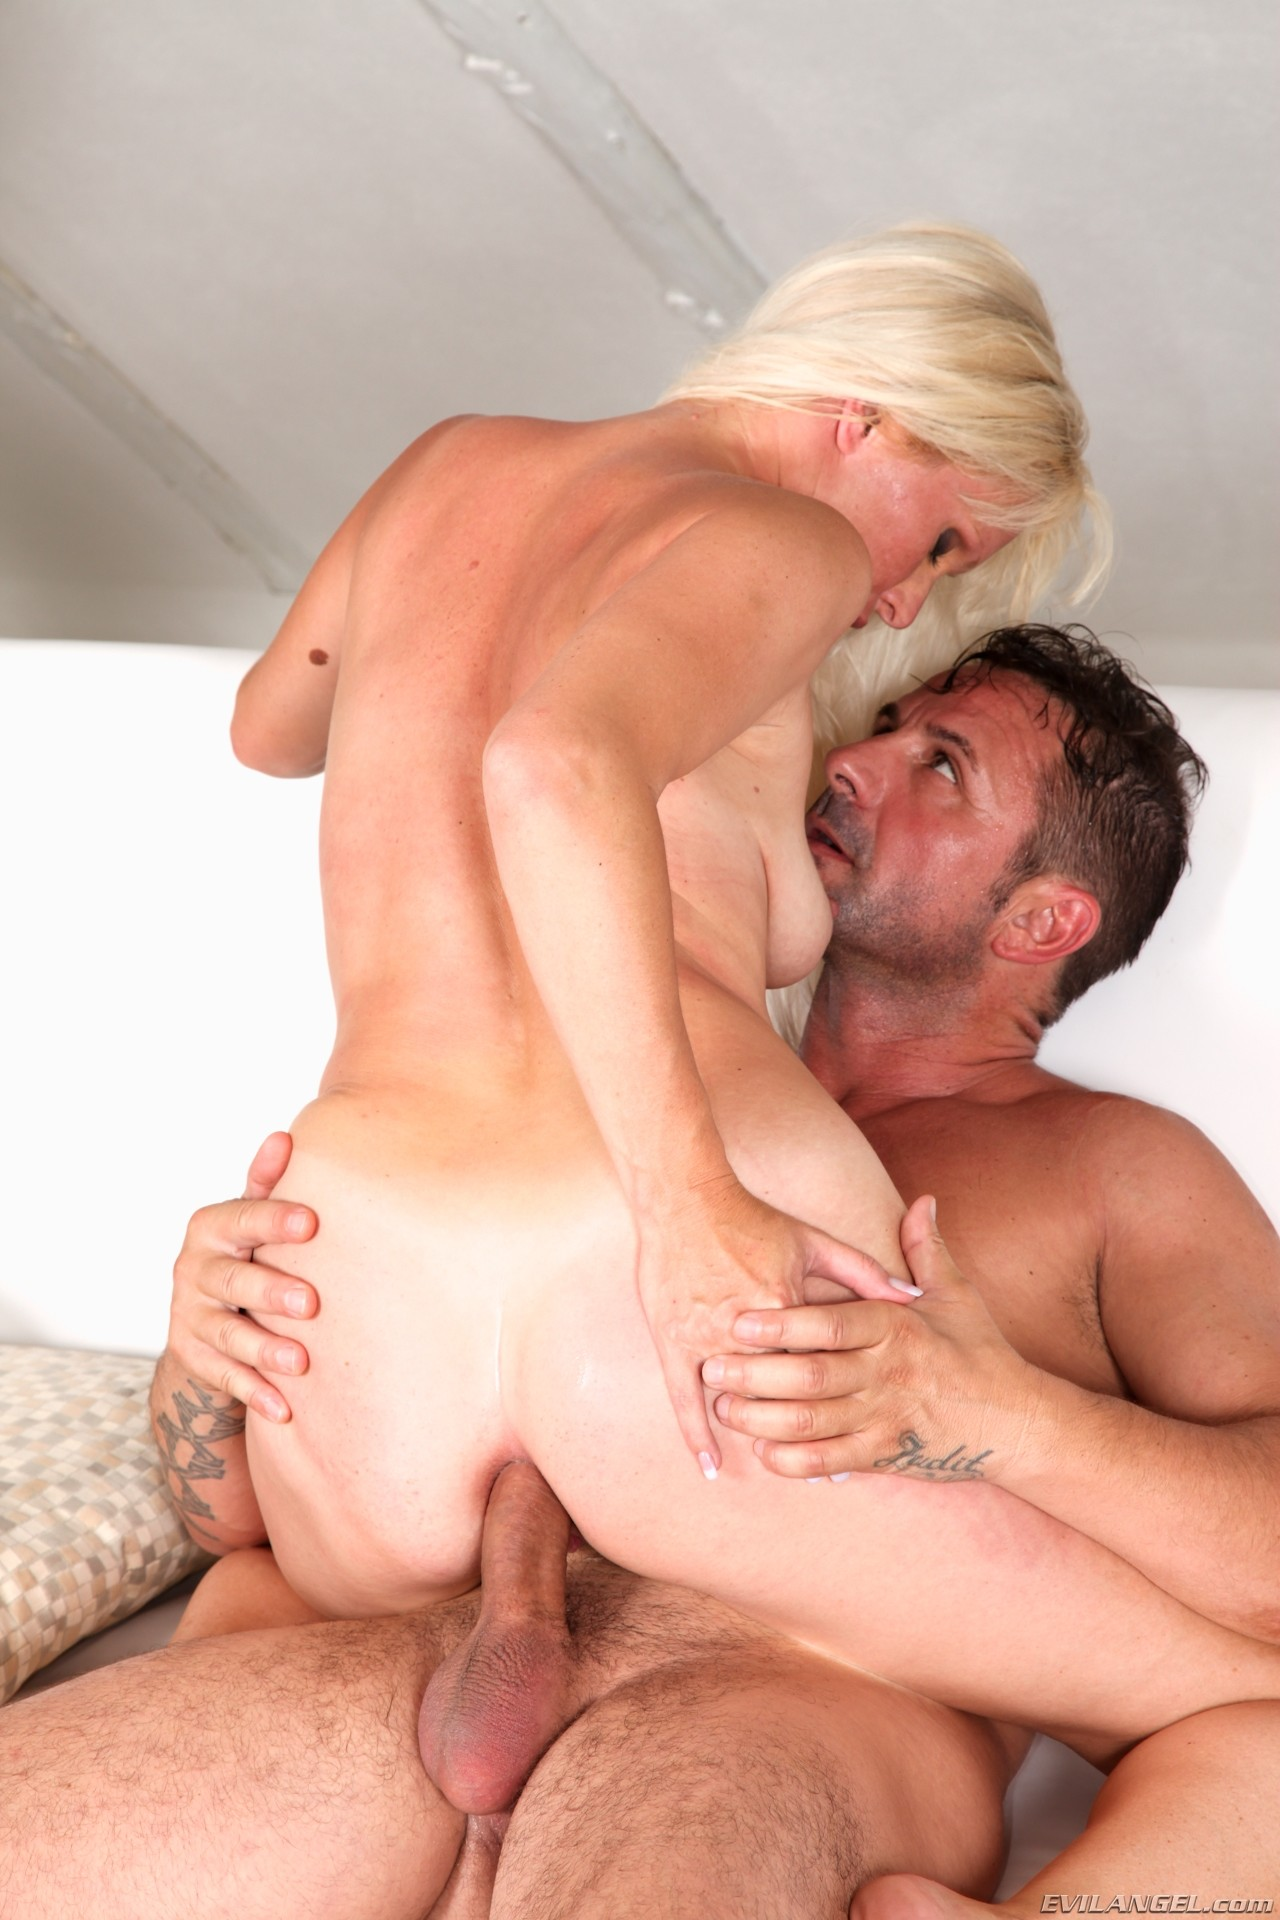 Doghouse fuck him and you can fuck me - 3 part 5